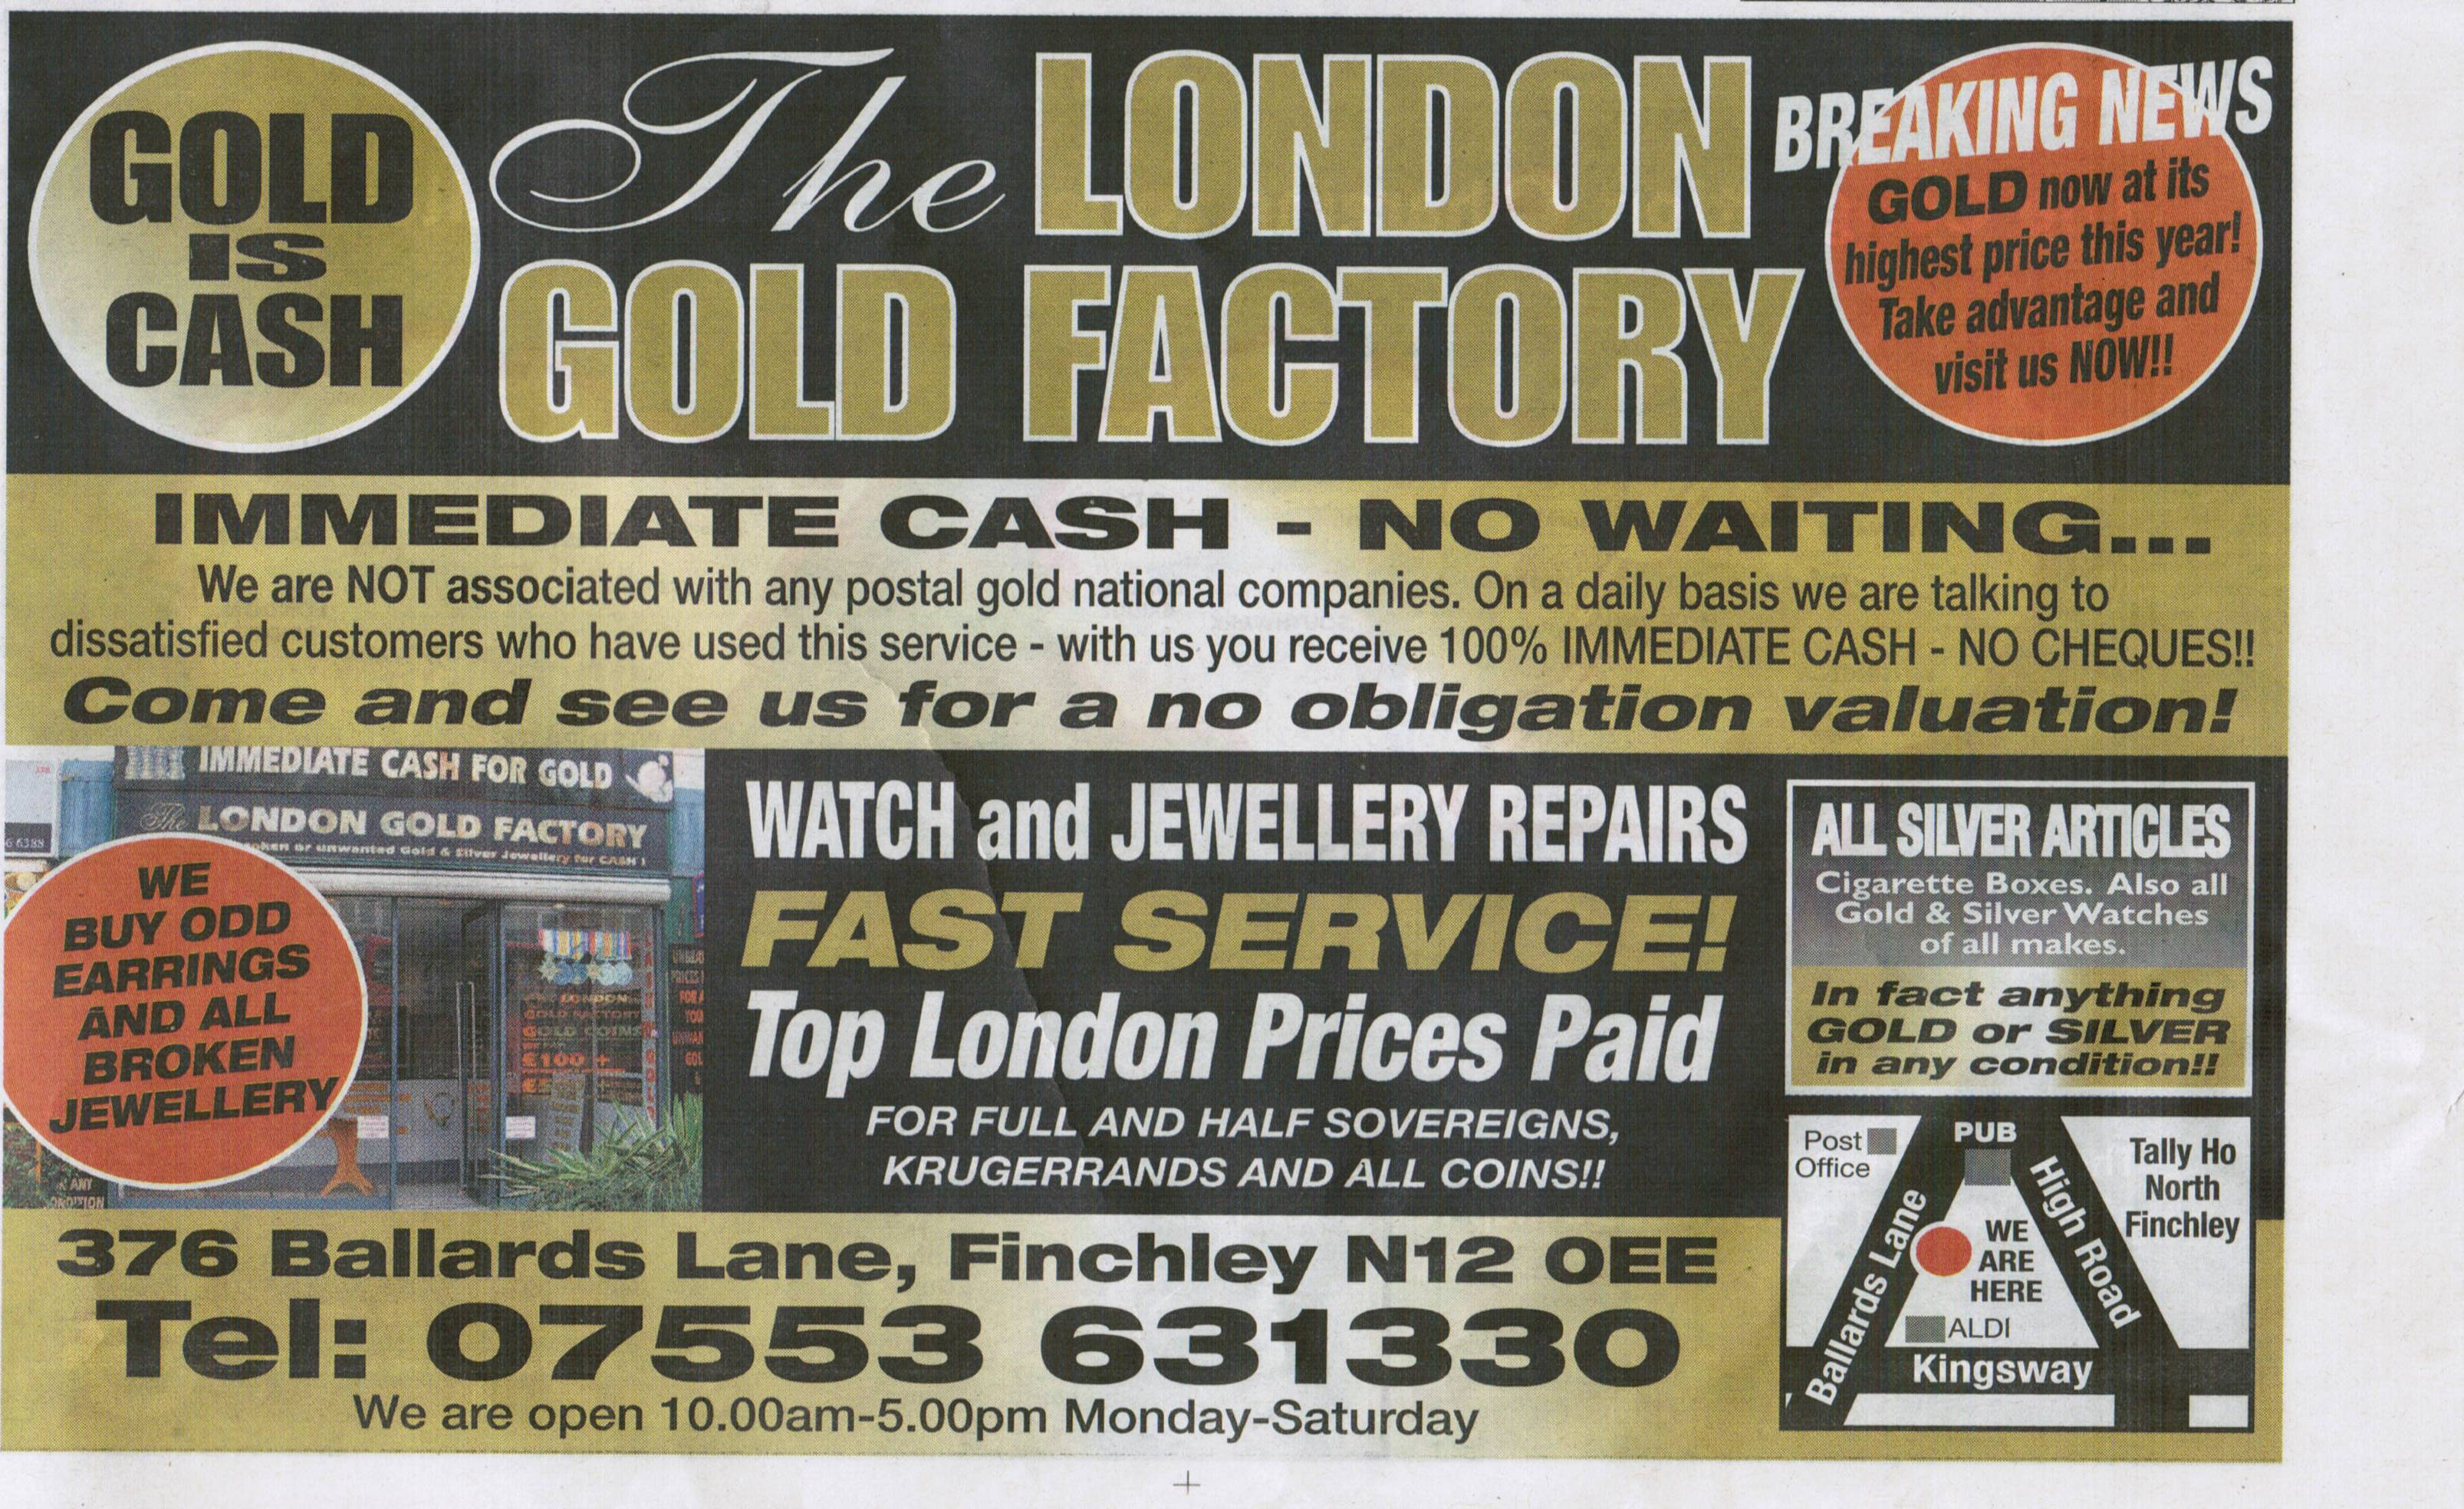 London Gold Factory